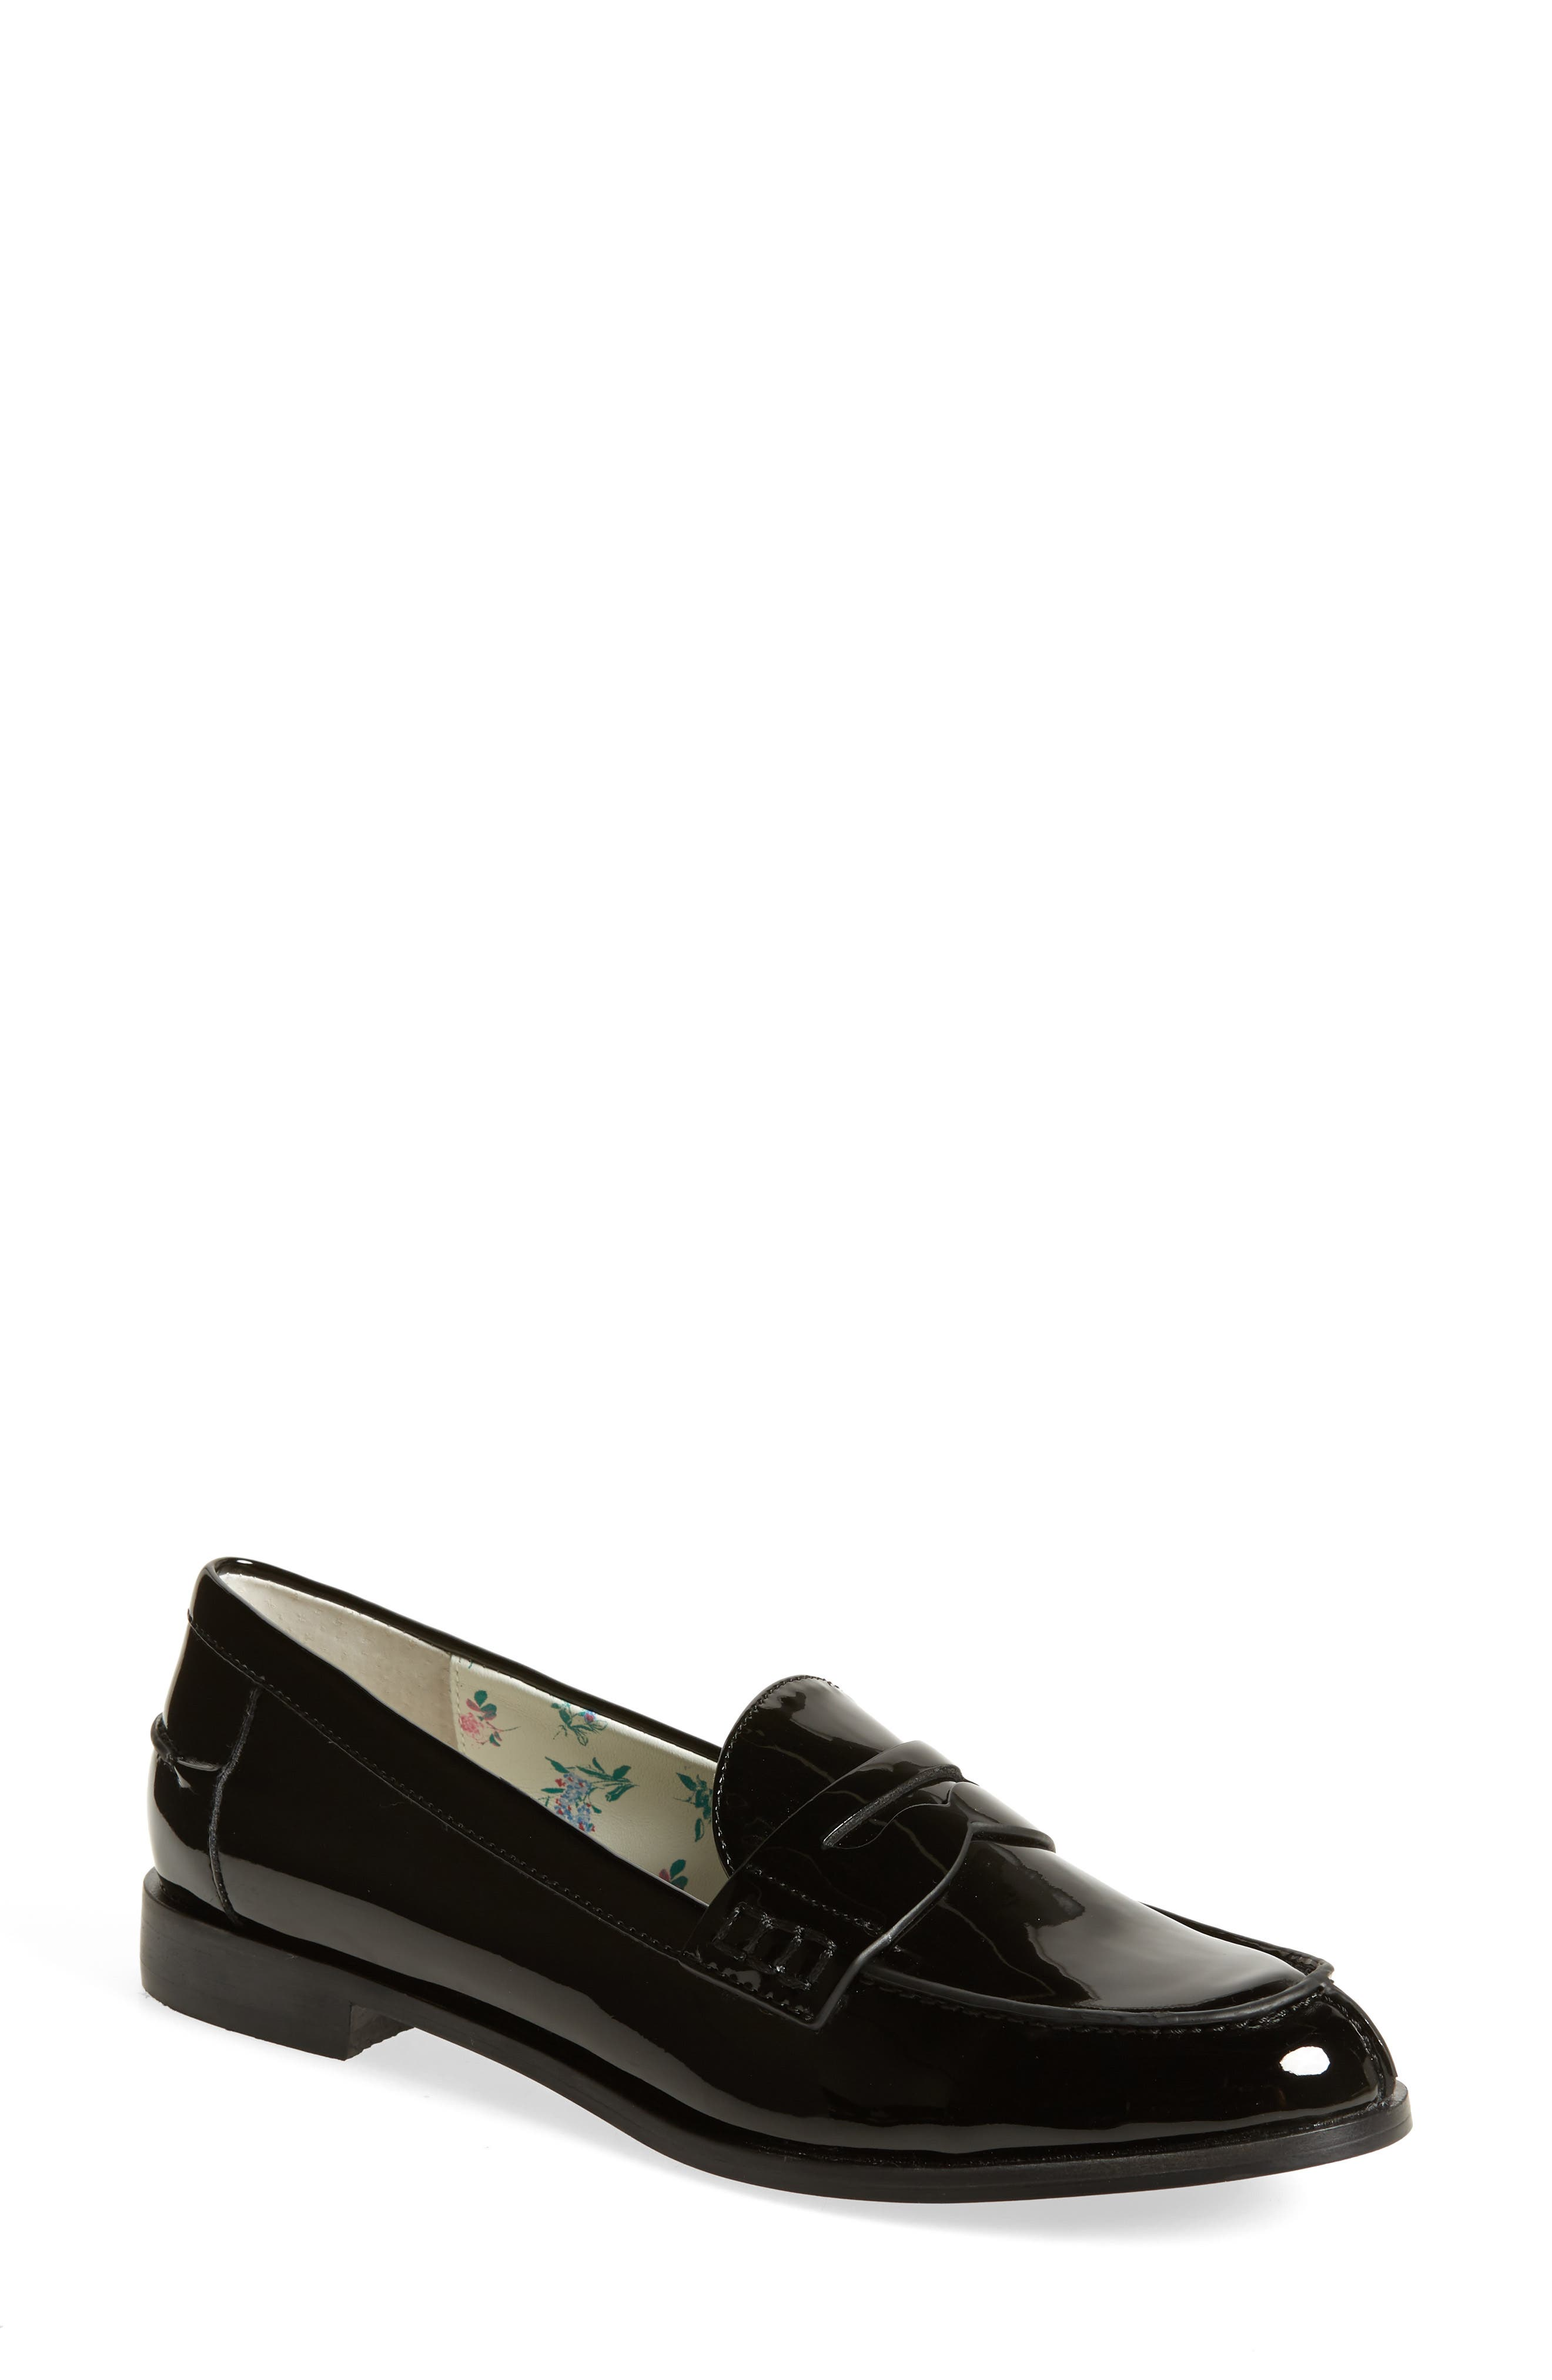 Niles Penny Loafer,                             Main thumbnail 1, color,                             BLACK FAUX PATENT